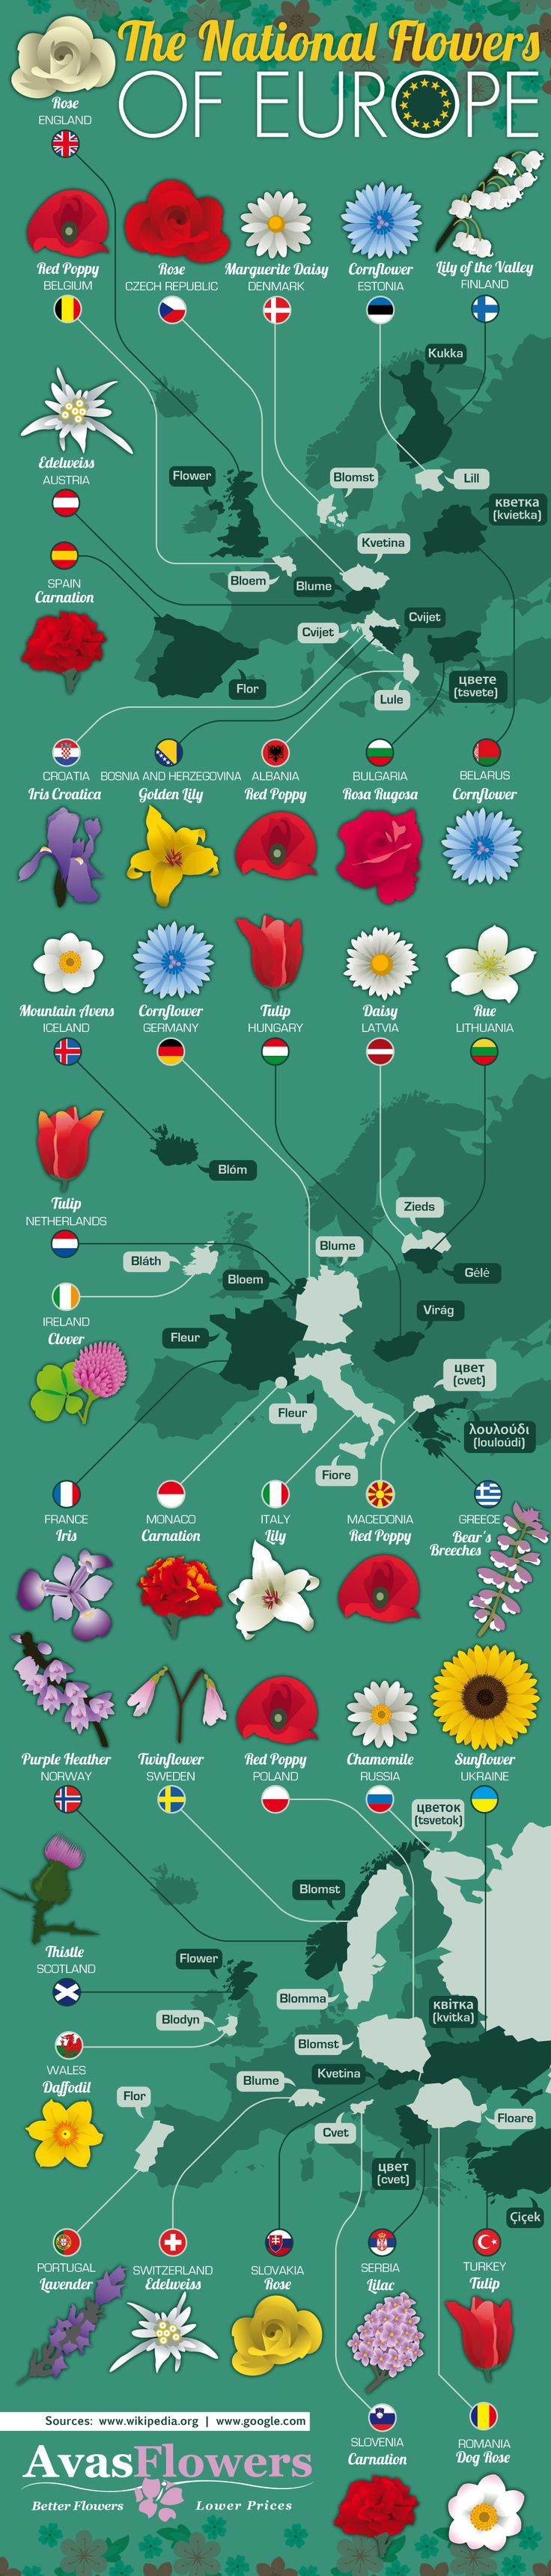 The National Flowers of Europe. I could get one for every country I've traveled to